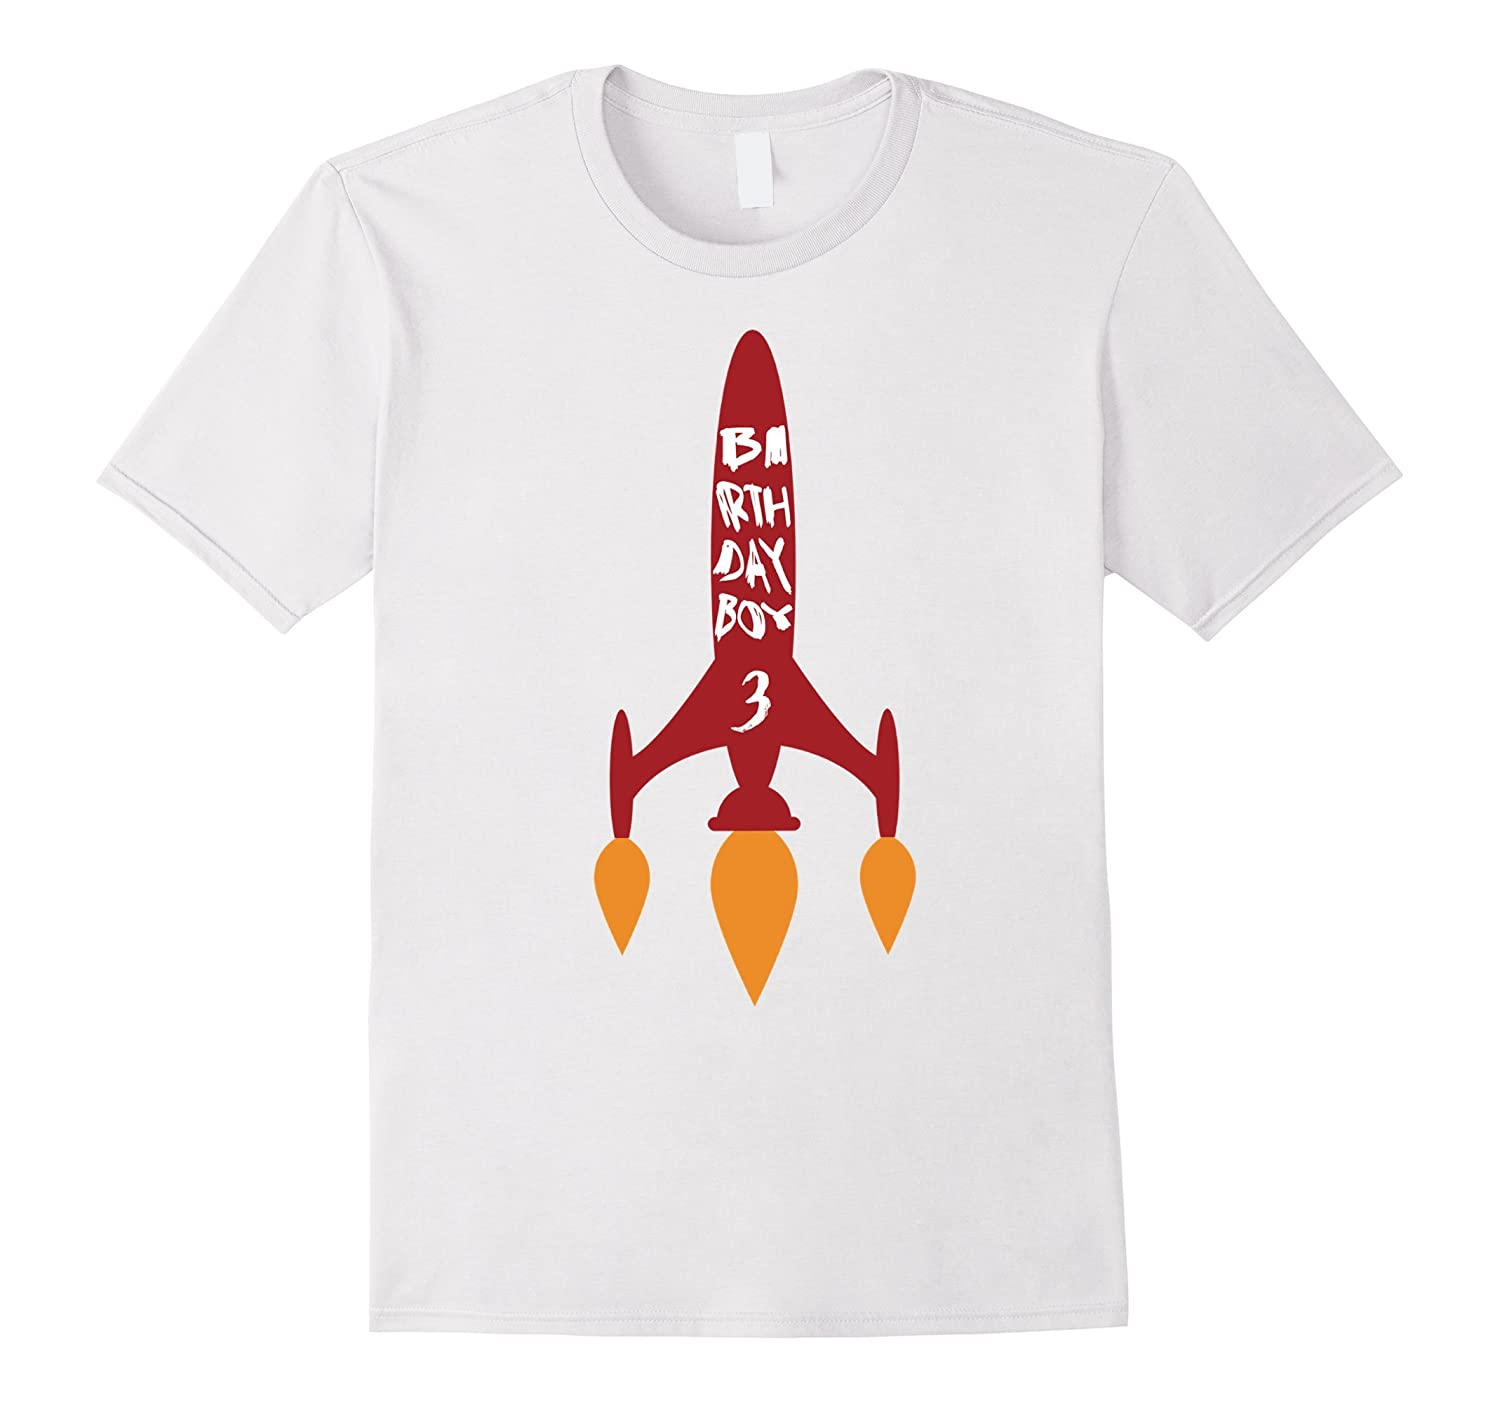 Birthday Boy 3 T Shirt Year Old Space Tee CL